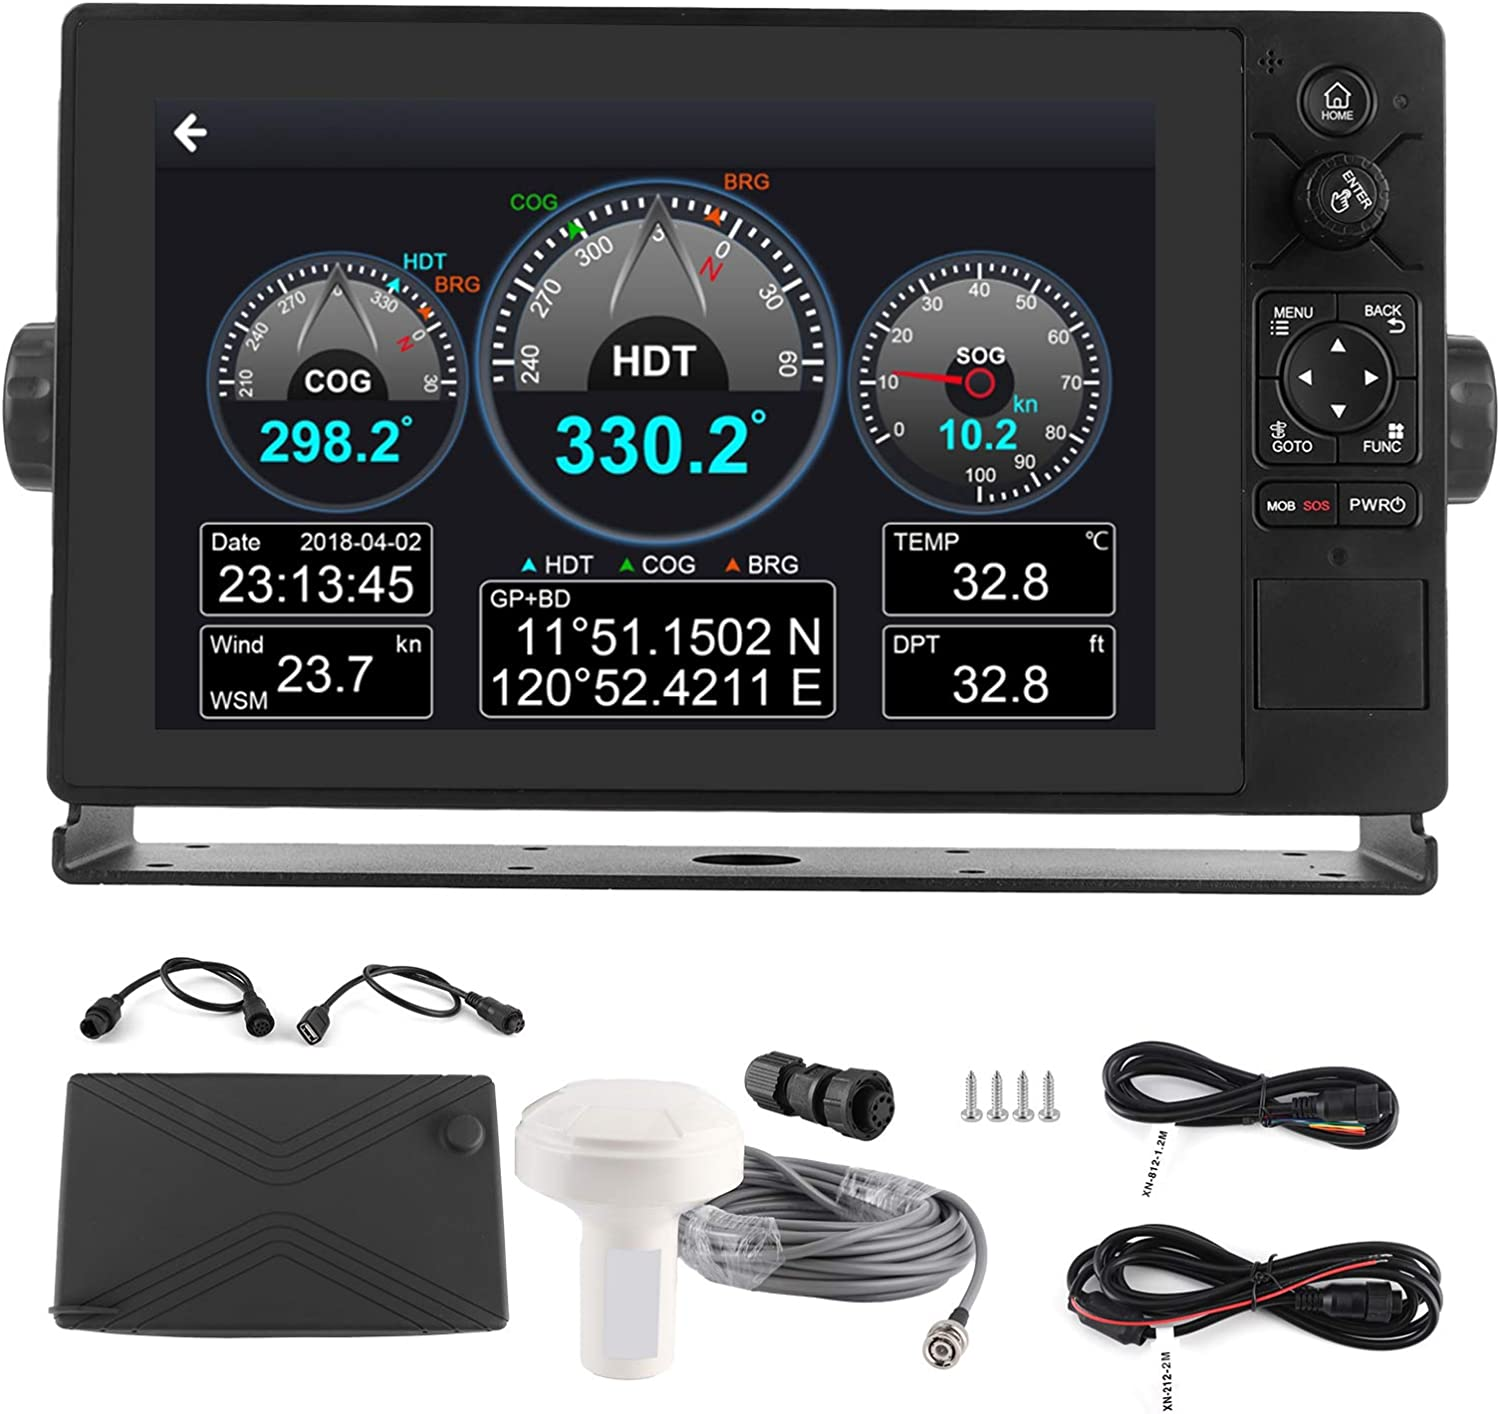 Boat GPS,10.1in 4G/WiFi Marine Color Displayer LCD Touch Screen Class B Transponder Chart Plotter Beidou GPS Dual Mode for Android 5.1 for Marine Navigator, 10.1in 4G/WiFi Marine Displayer LCD T